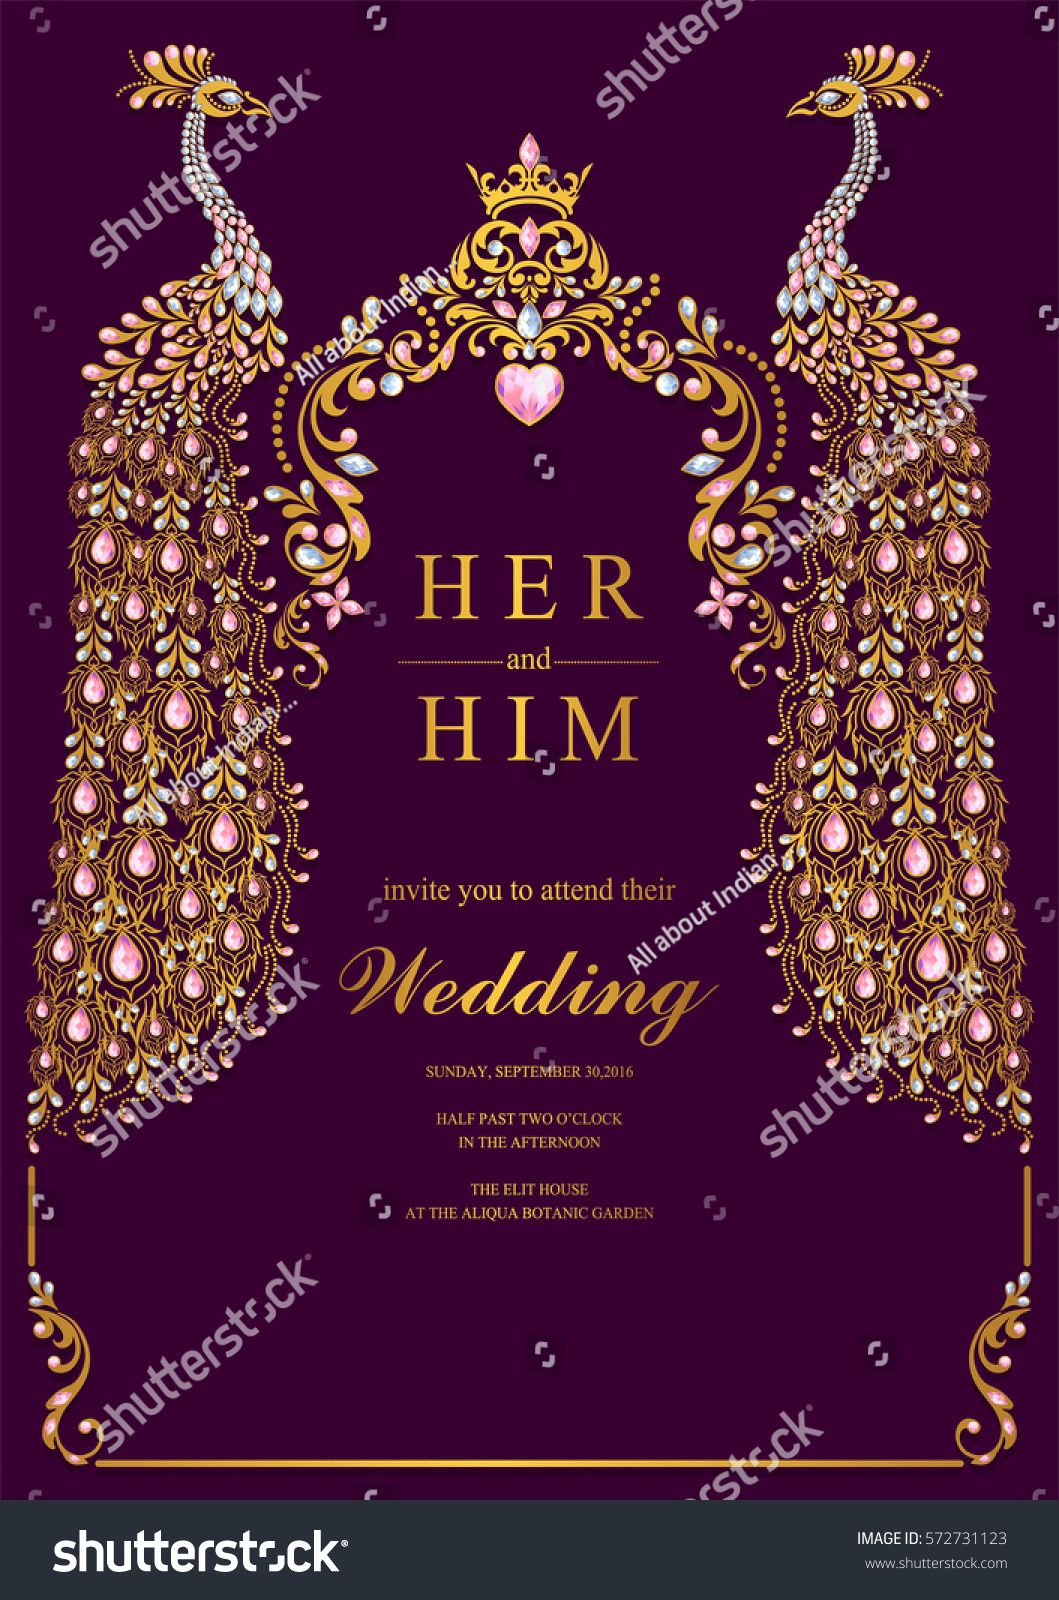 Indian Wedding Invitation Templates For Friends  vincegray3